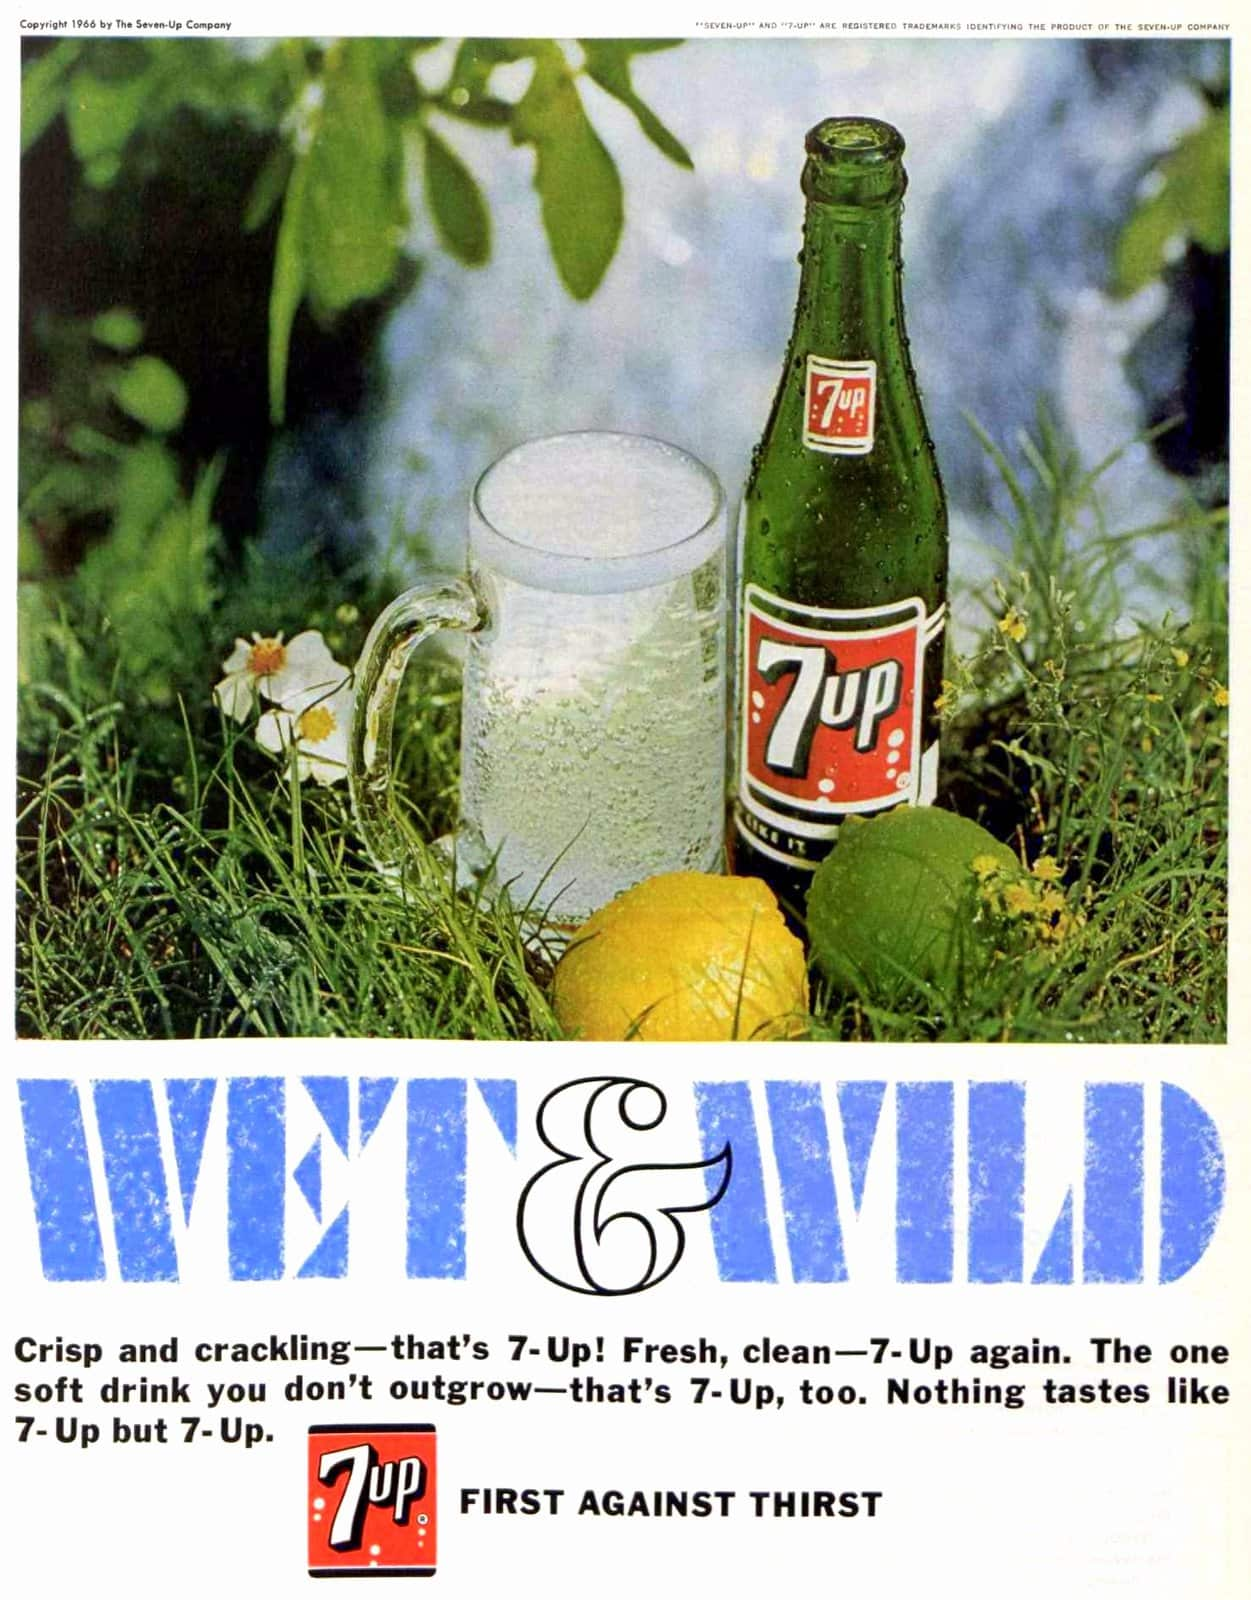 Wet and wild 7-Up (1966)